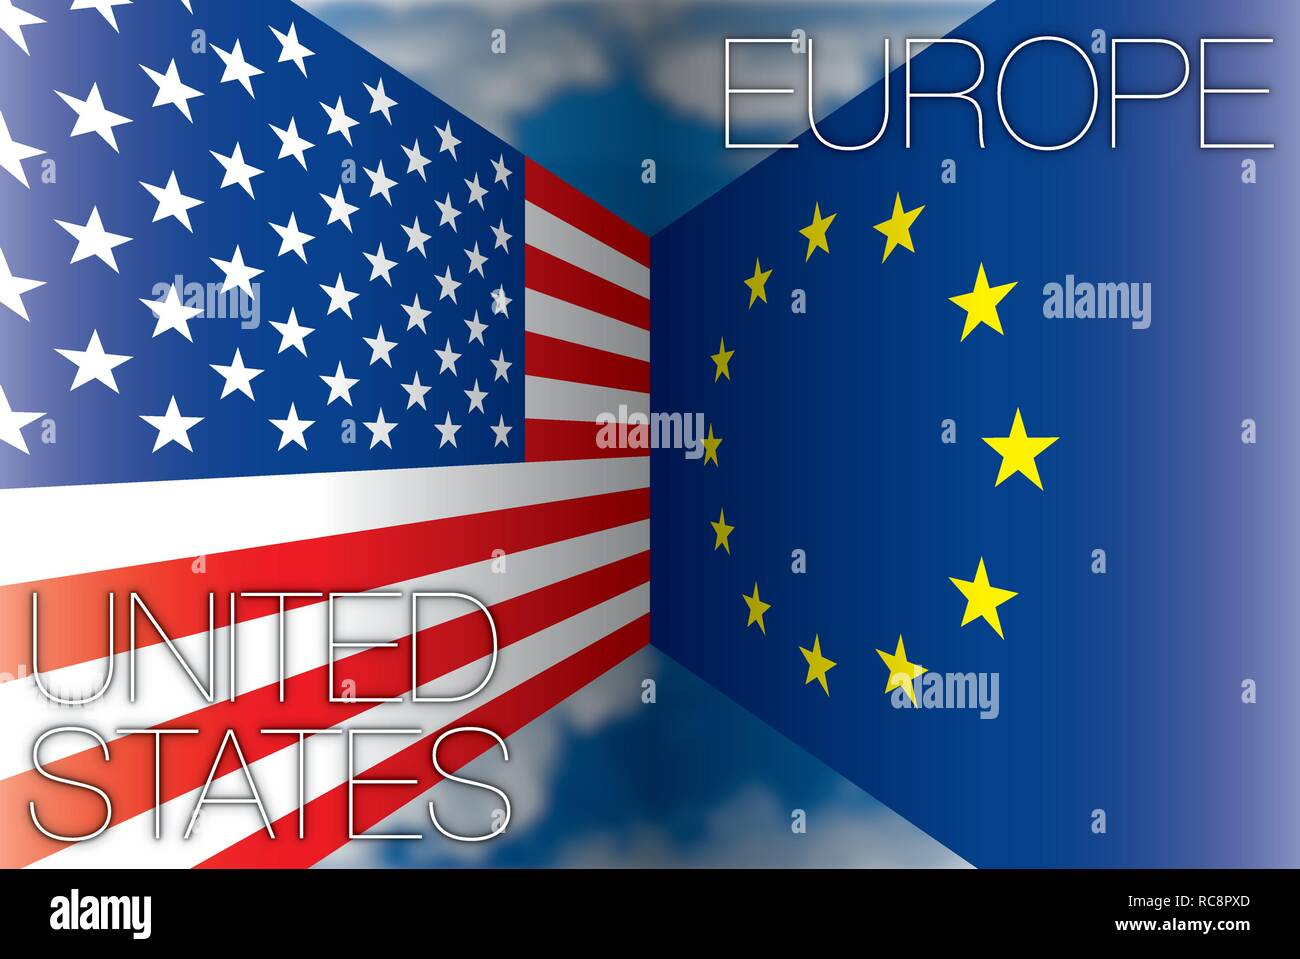 United States versus European Union flags, vector illustration - Stock Image